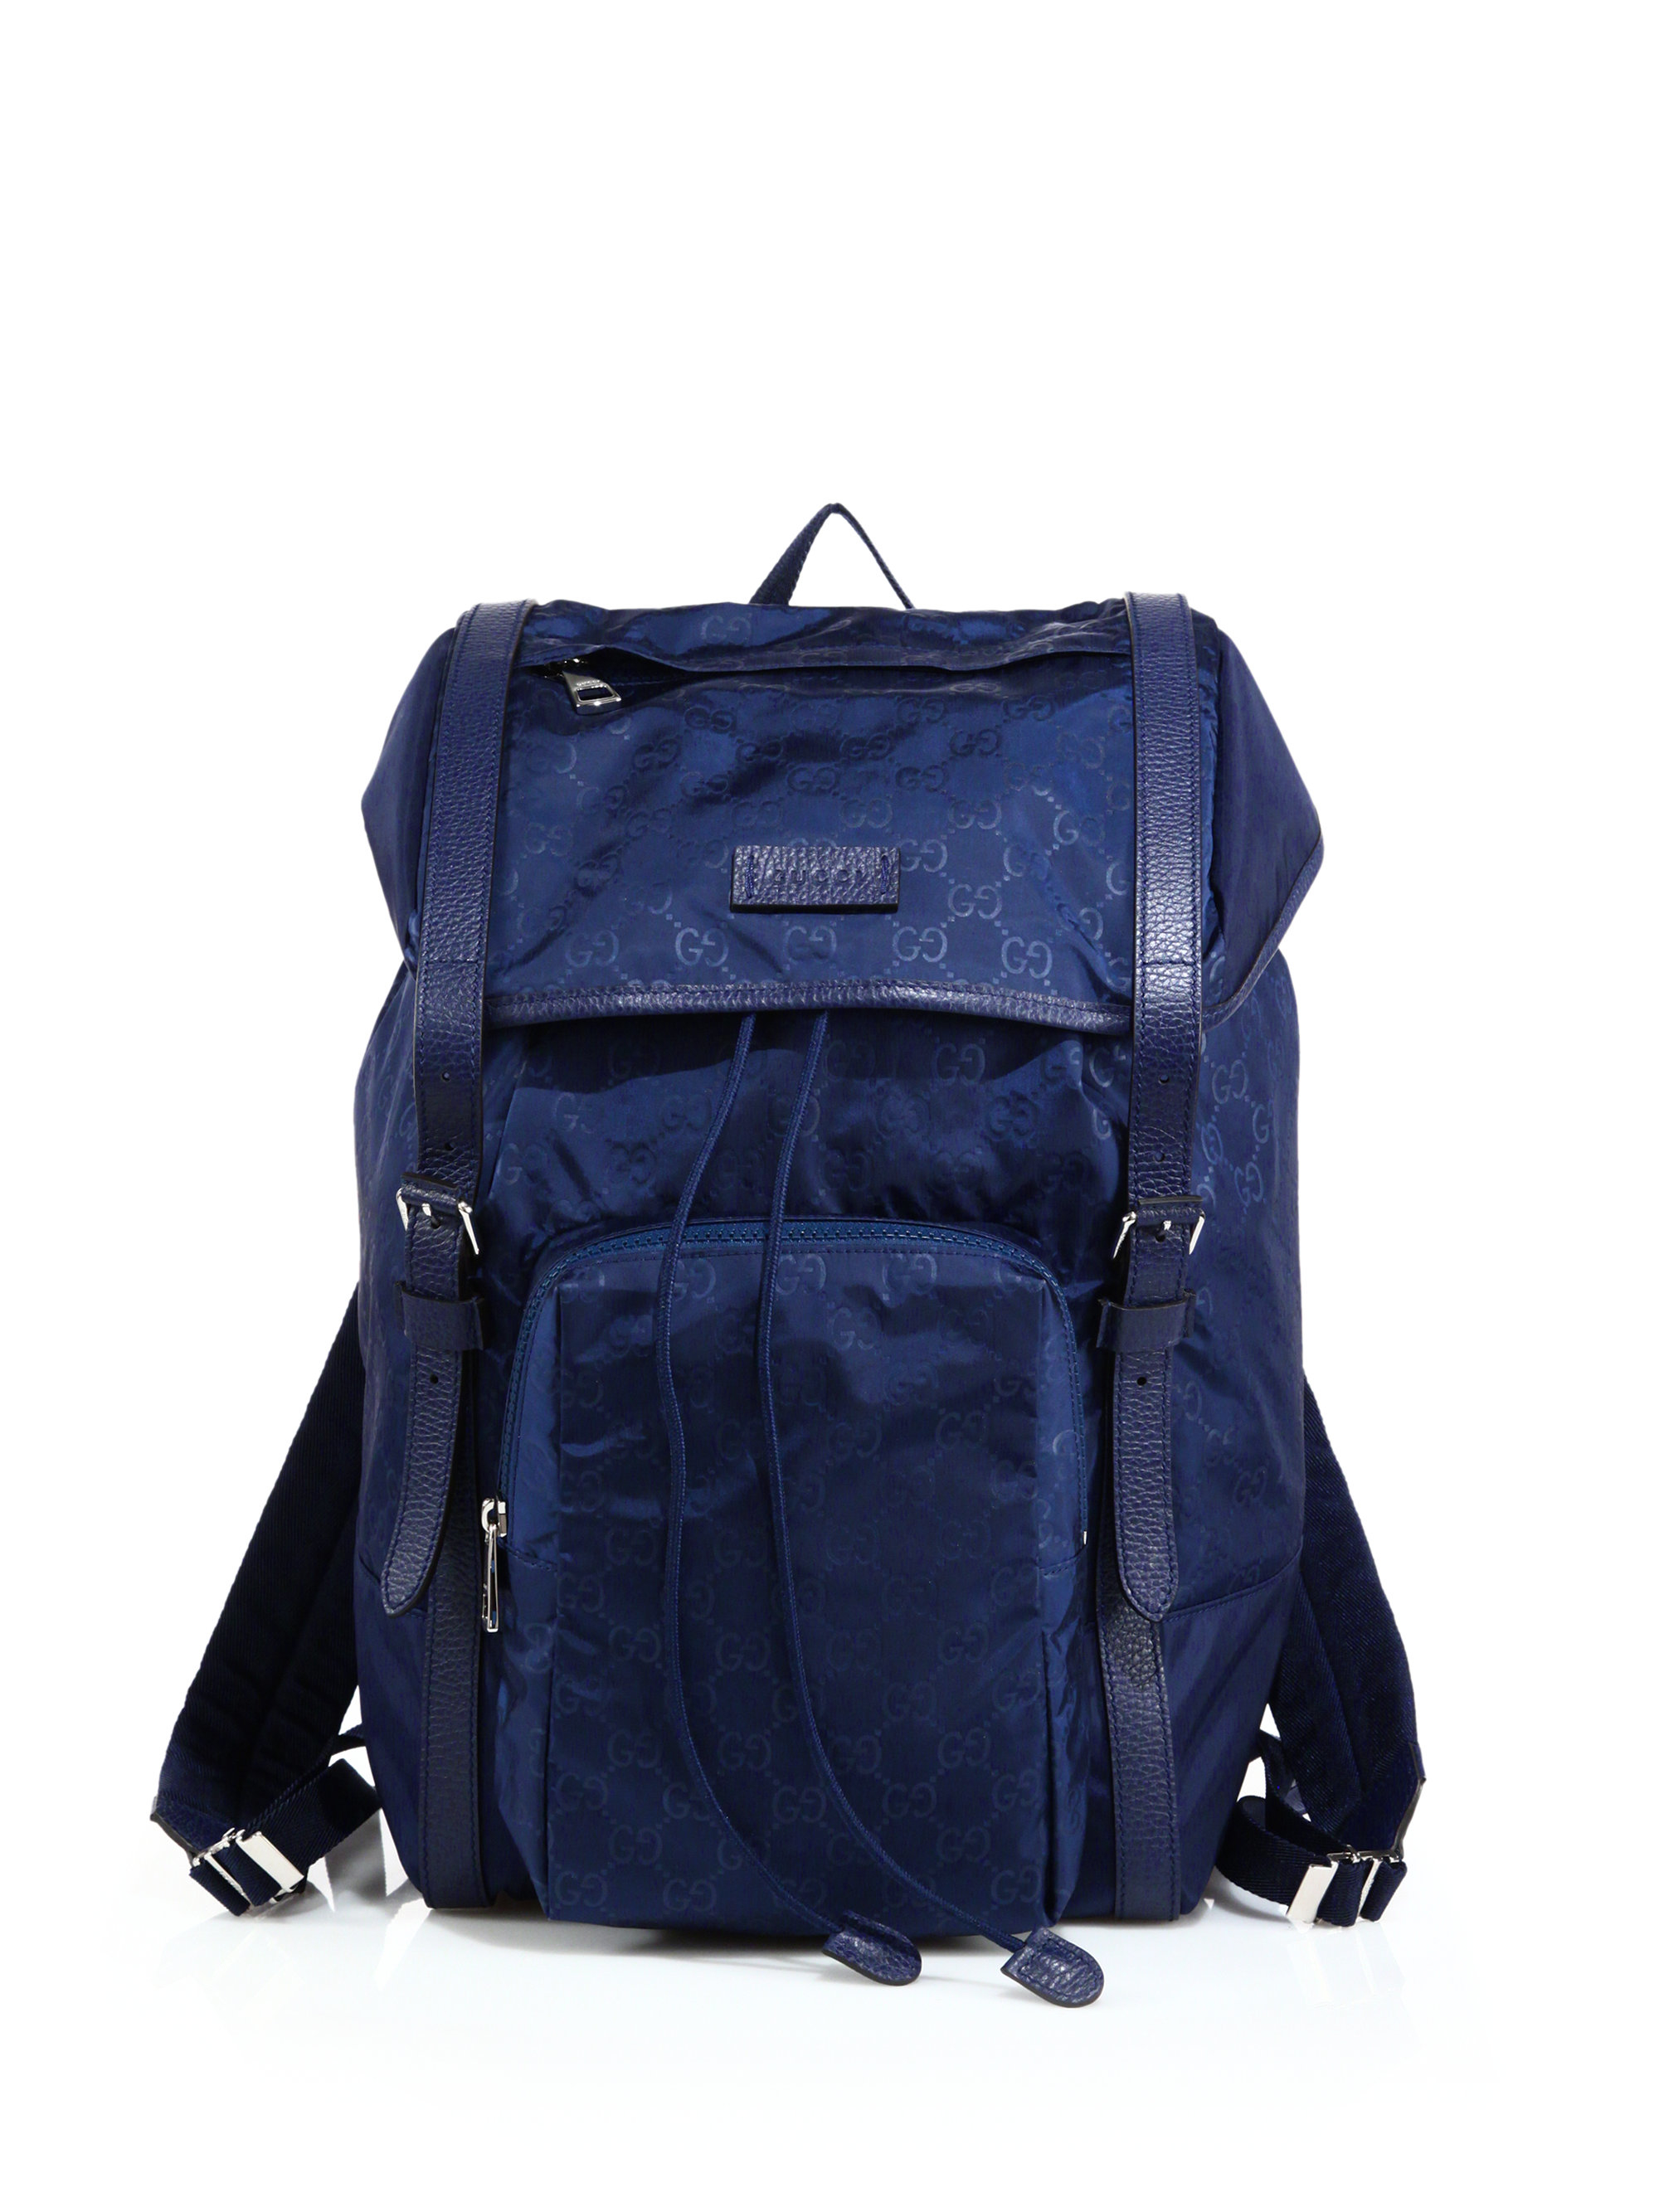 a87302f22db5 Lyst - Gucci Nylon Sima Backpack in Blue